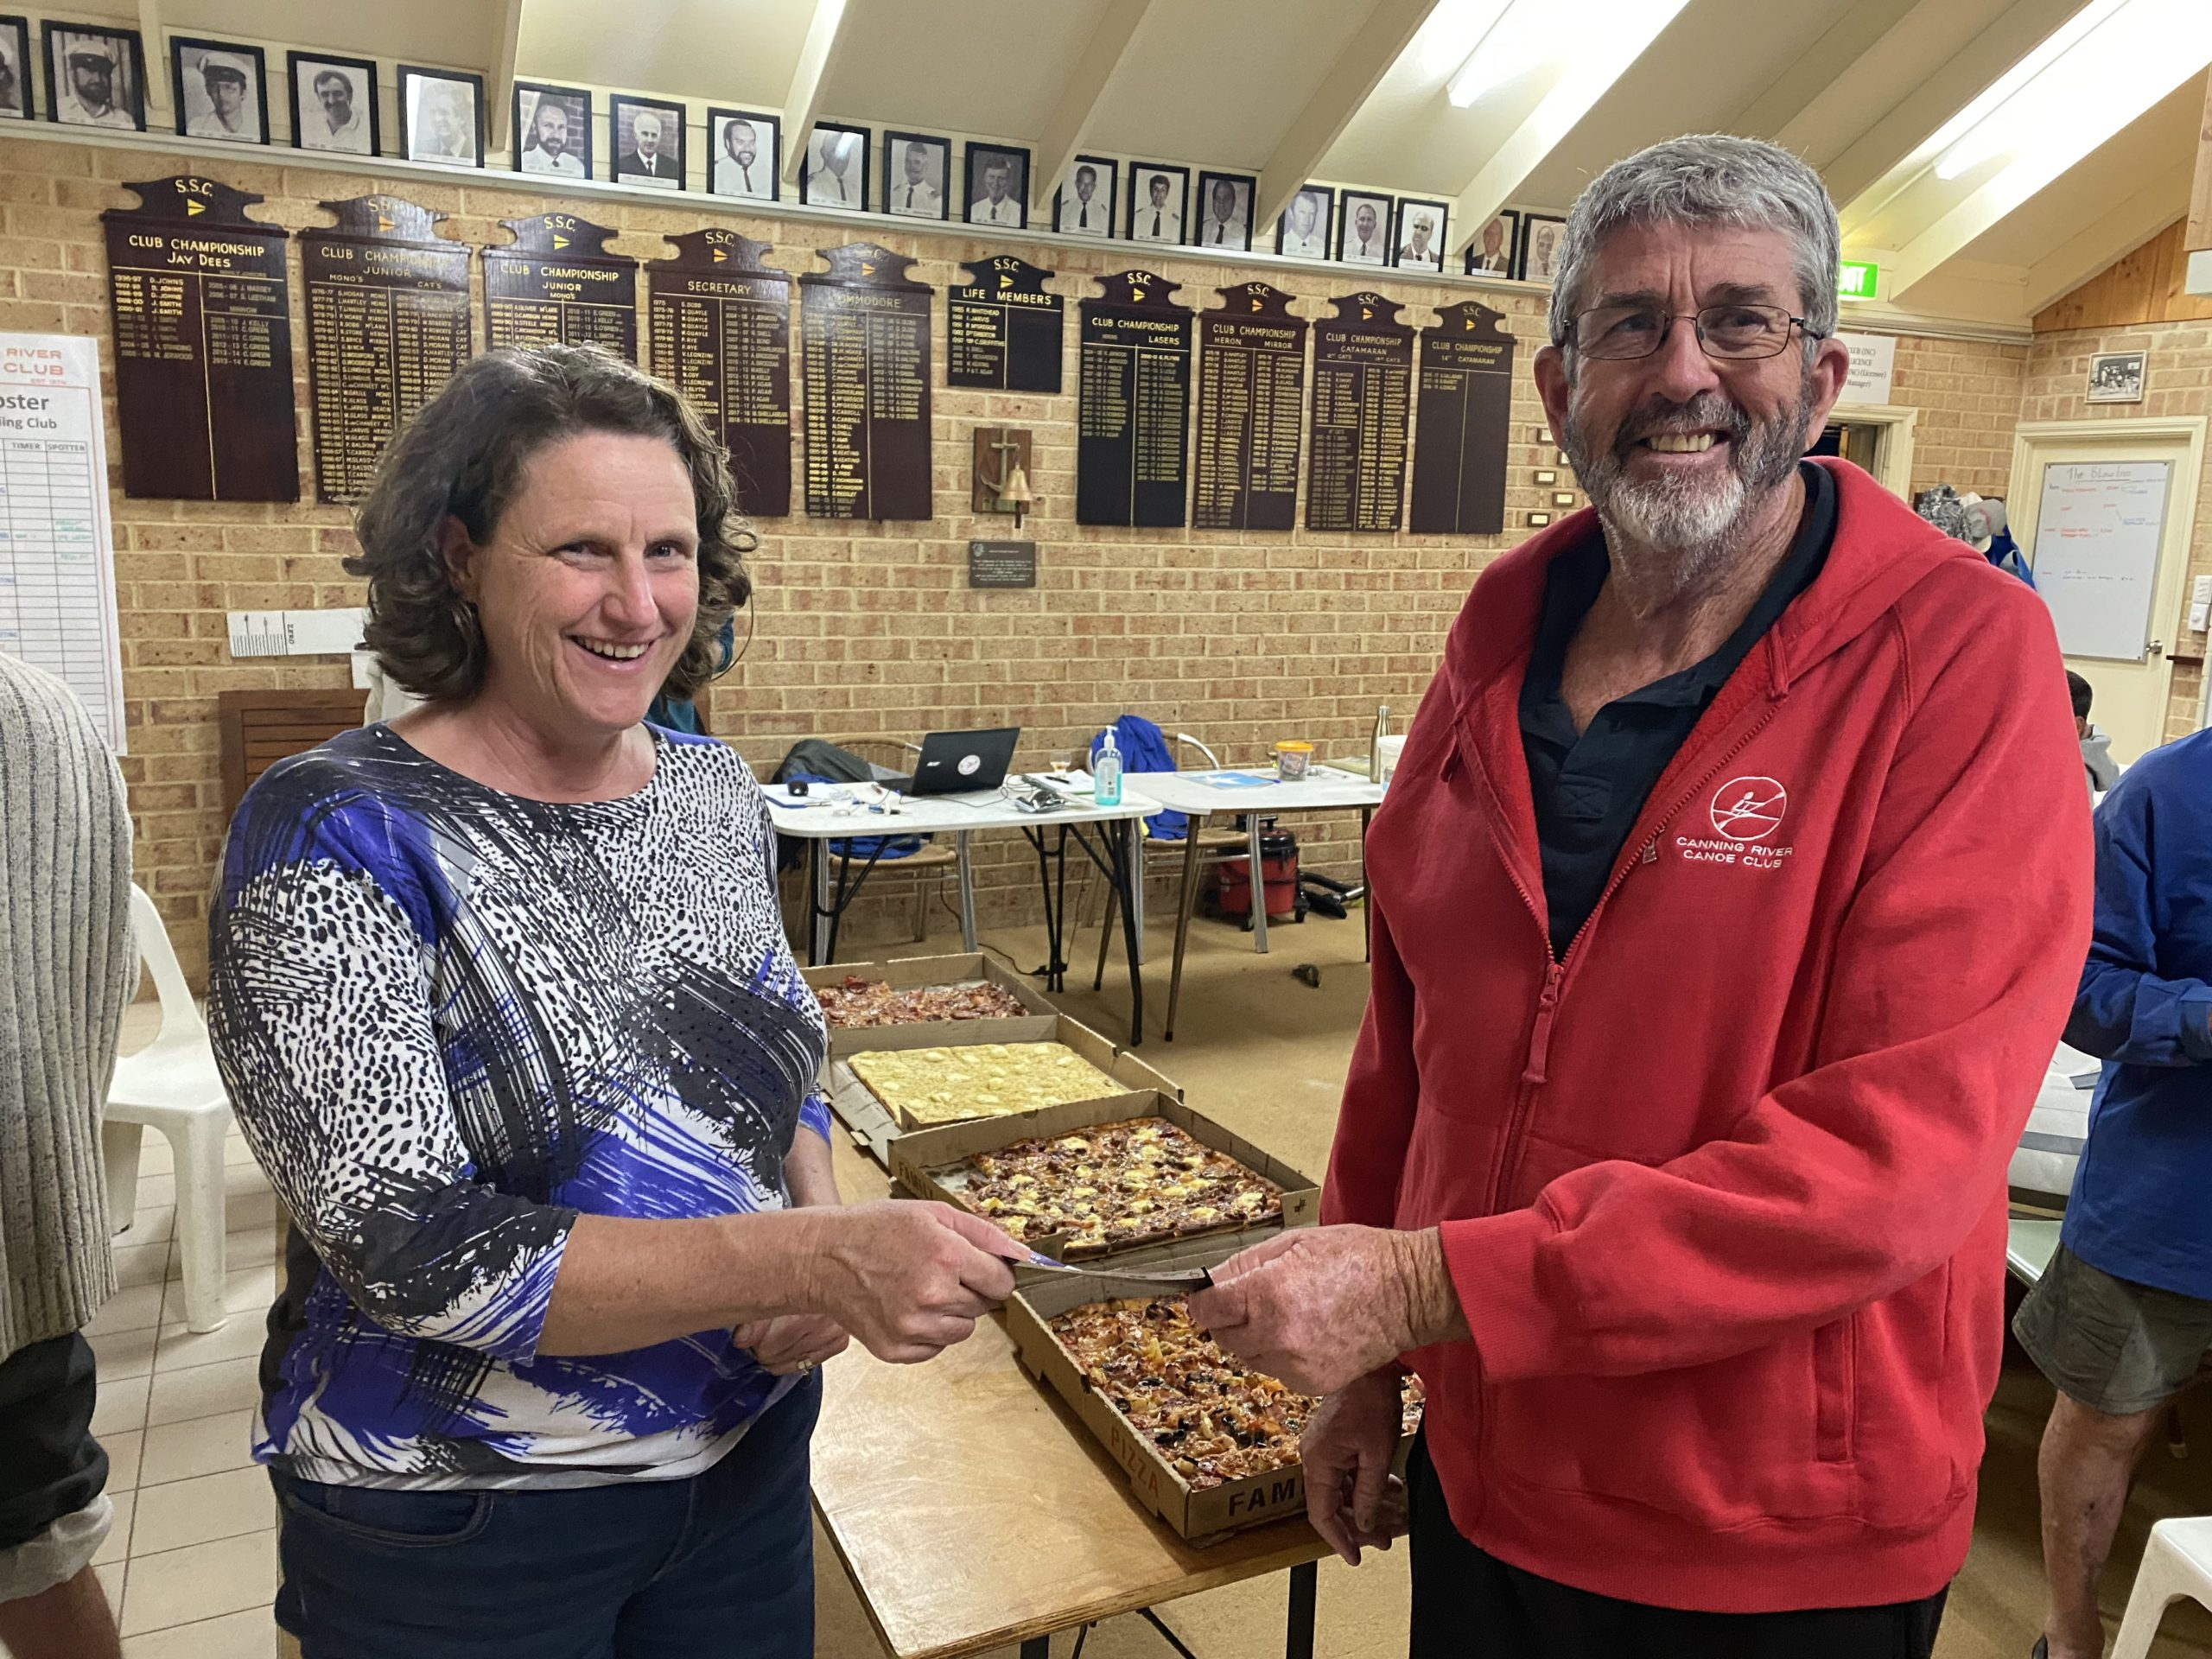 Tuesday 2nd June 2020 : Tonight's photo shows club member Cindy Coward presenting David Griffiths with a movie voucher.